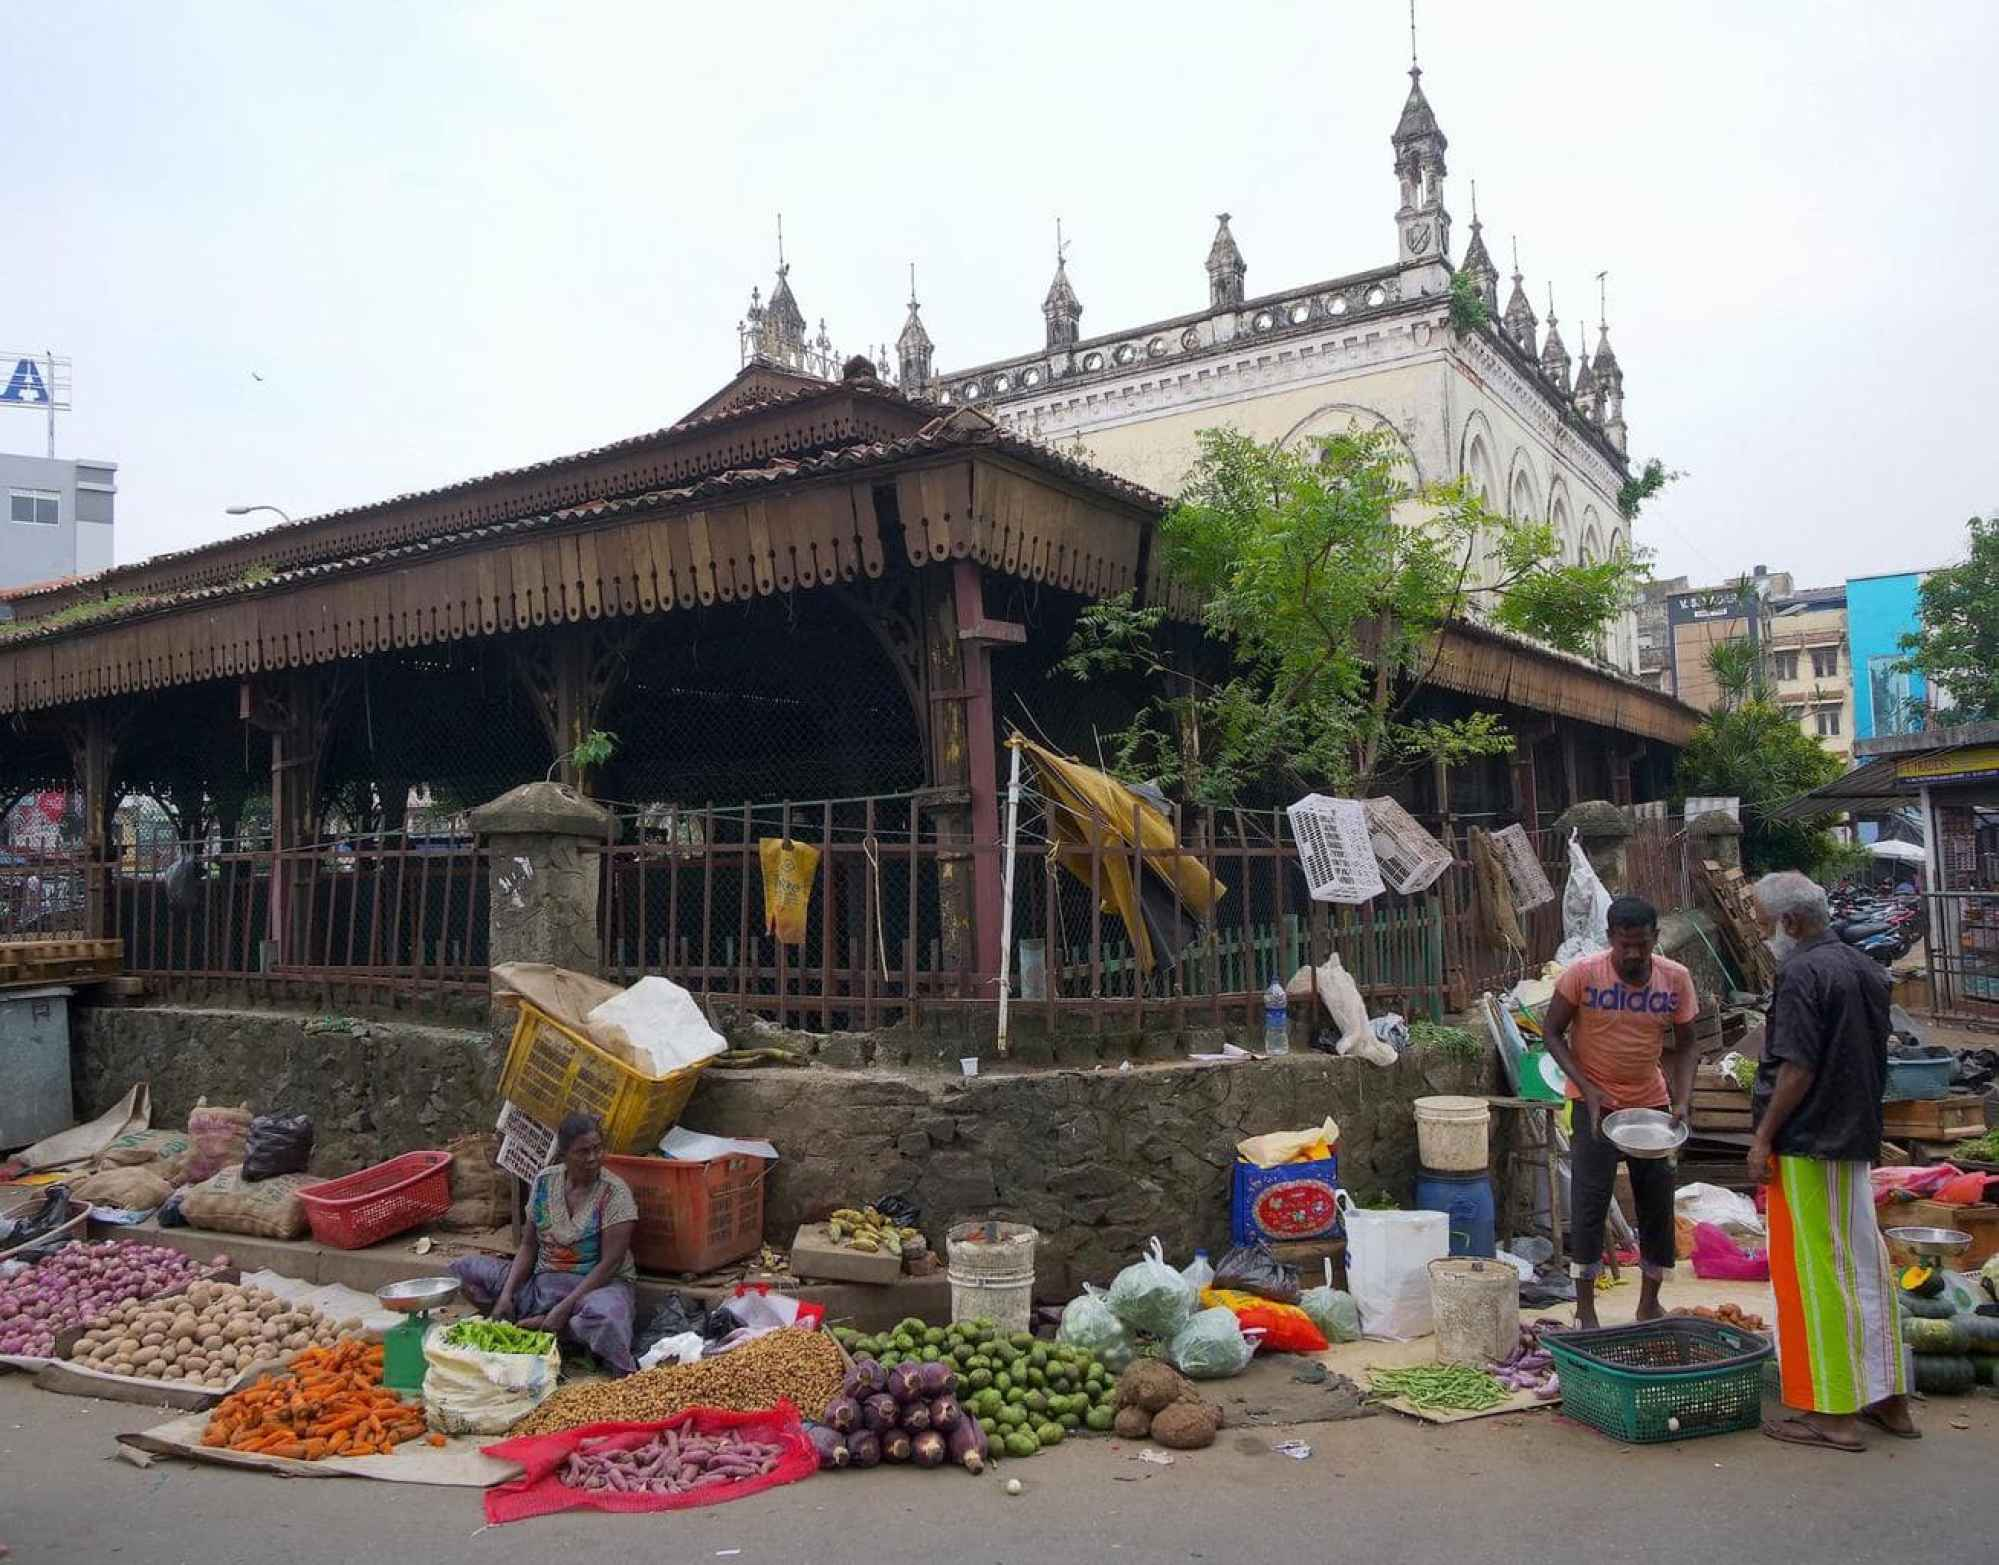 Old Town Hall Market